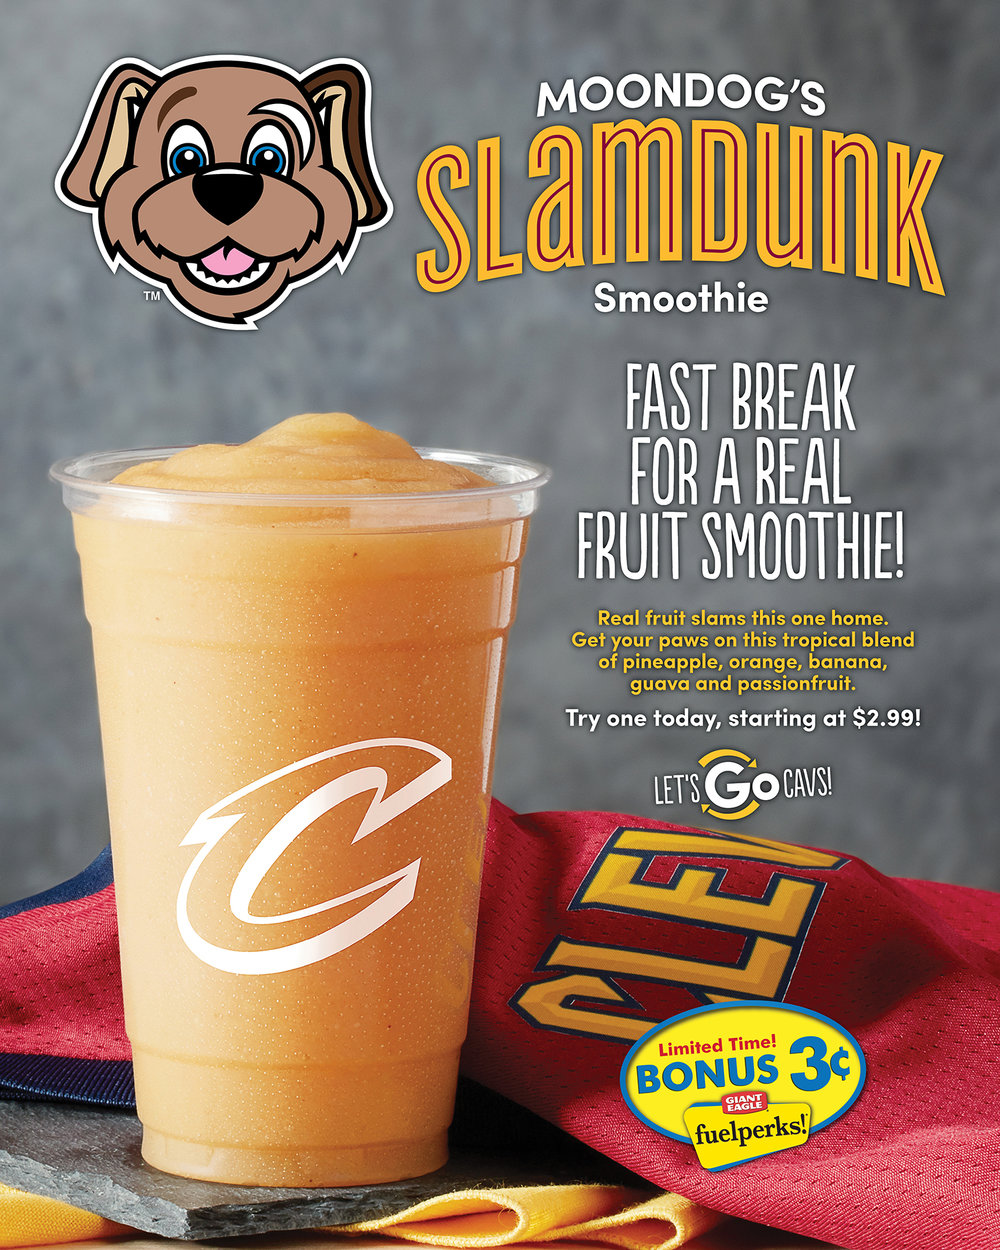 Moondog's Slamdunk Smoothie